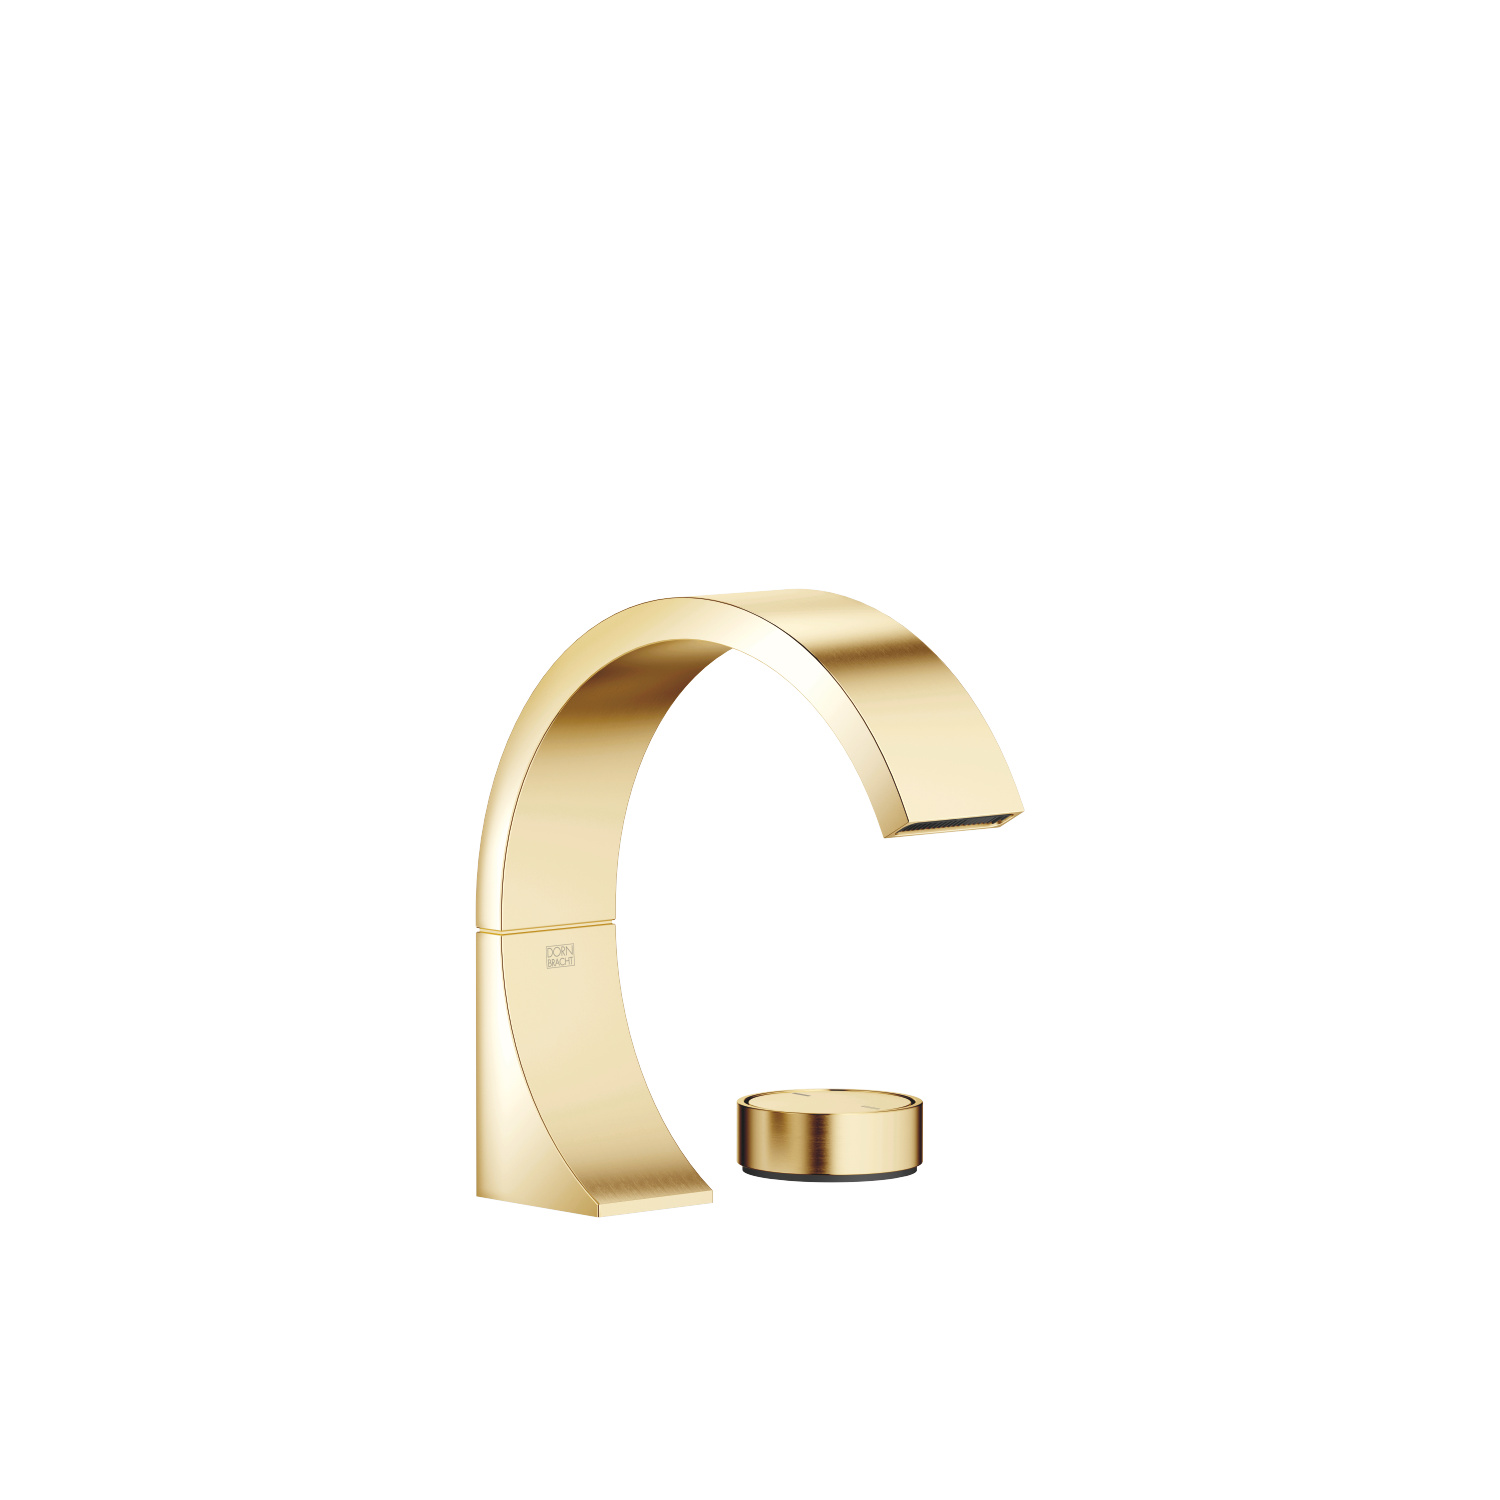 two-hole basin mixer without pop-up waste - Durabrass / brushed Durabrass